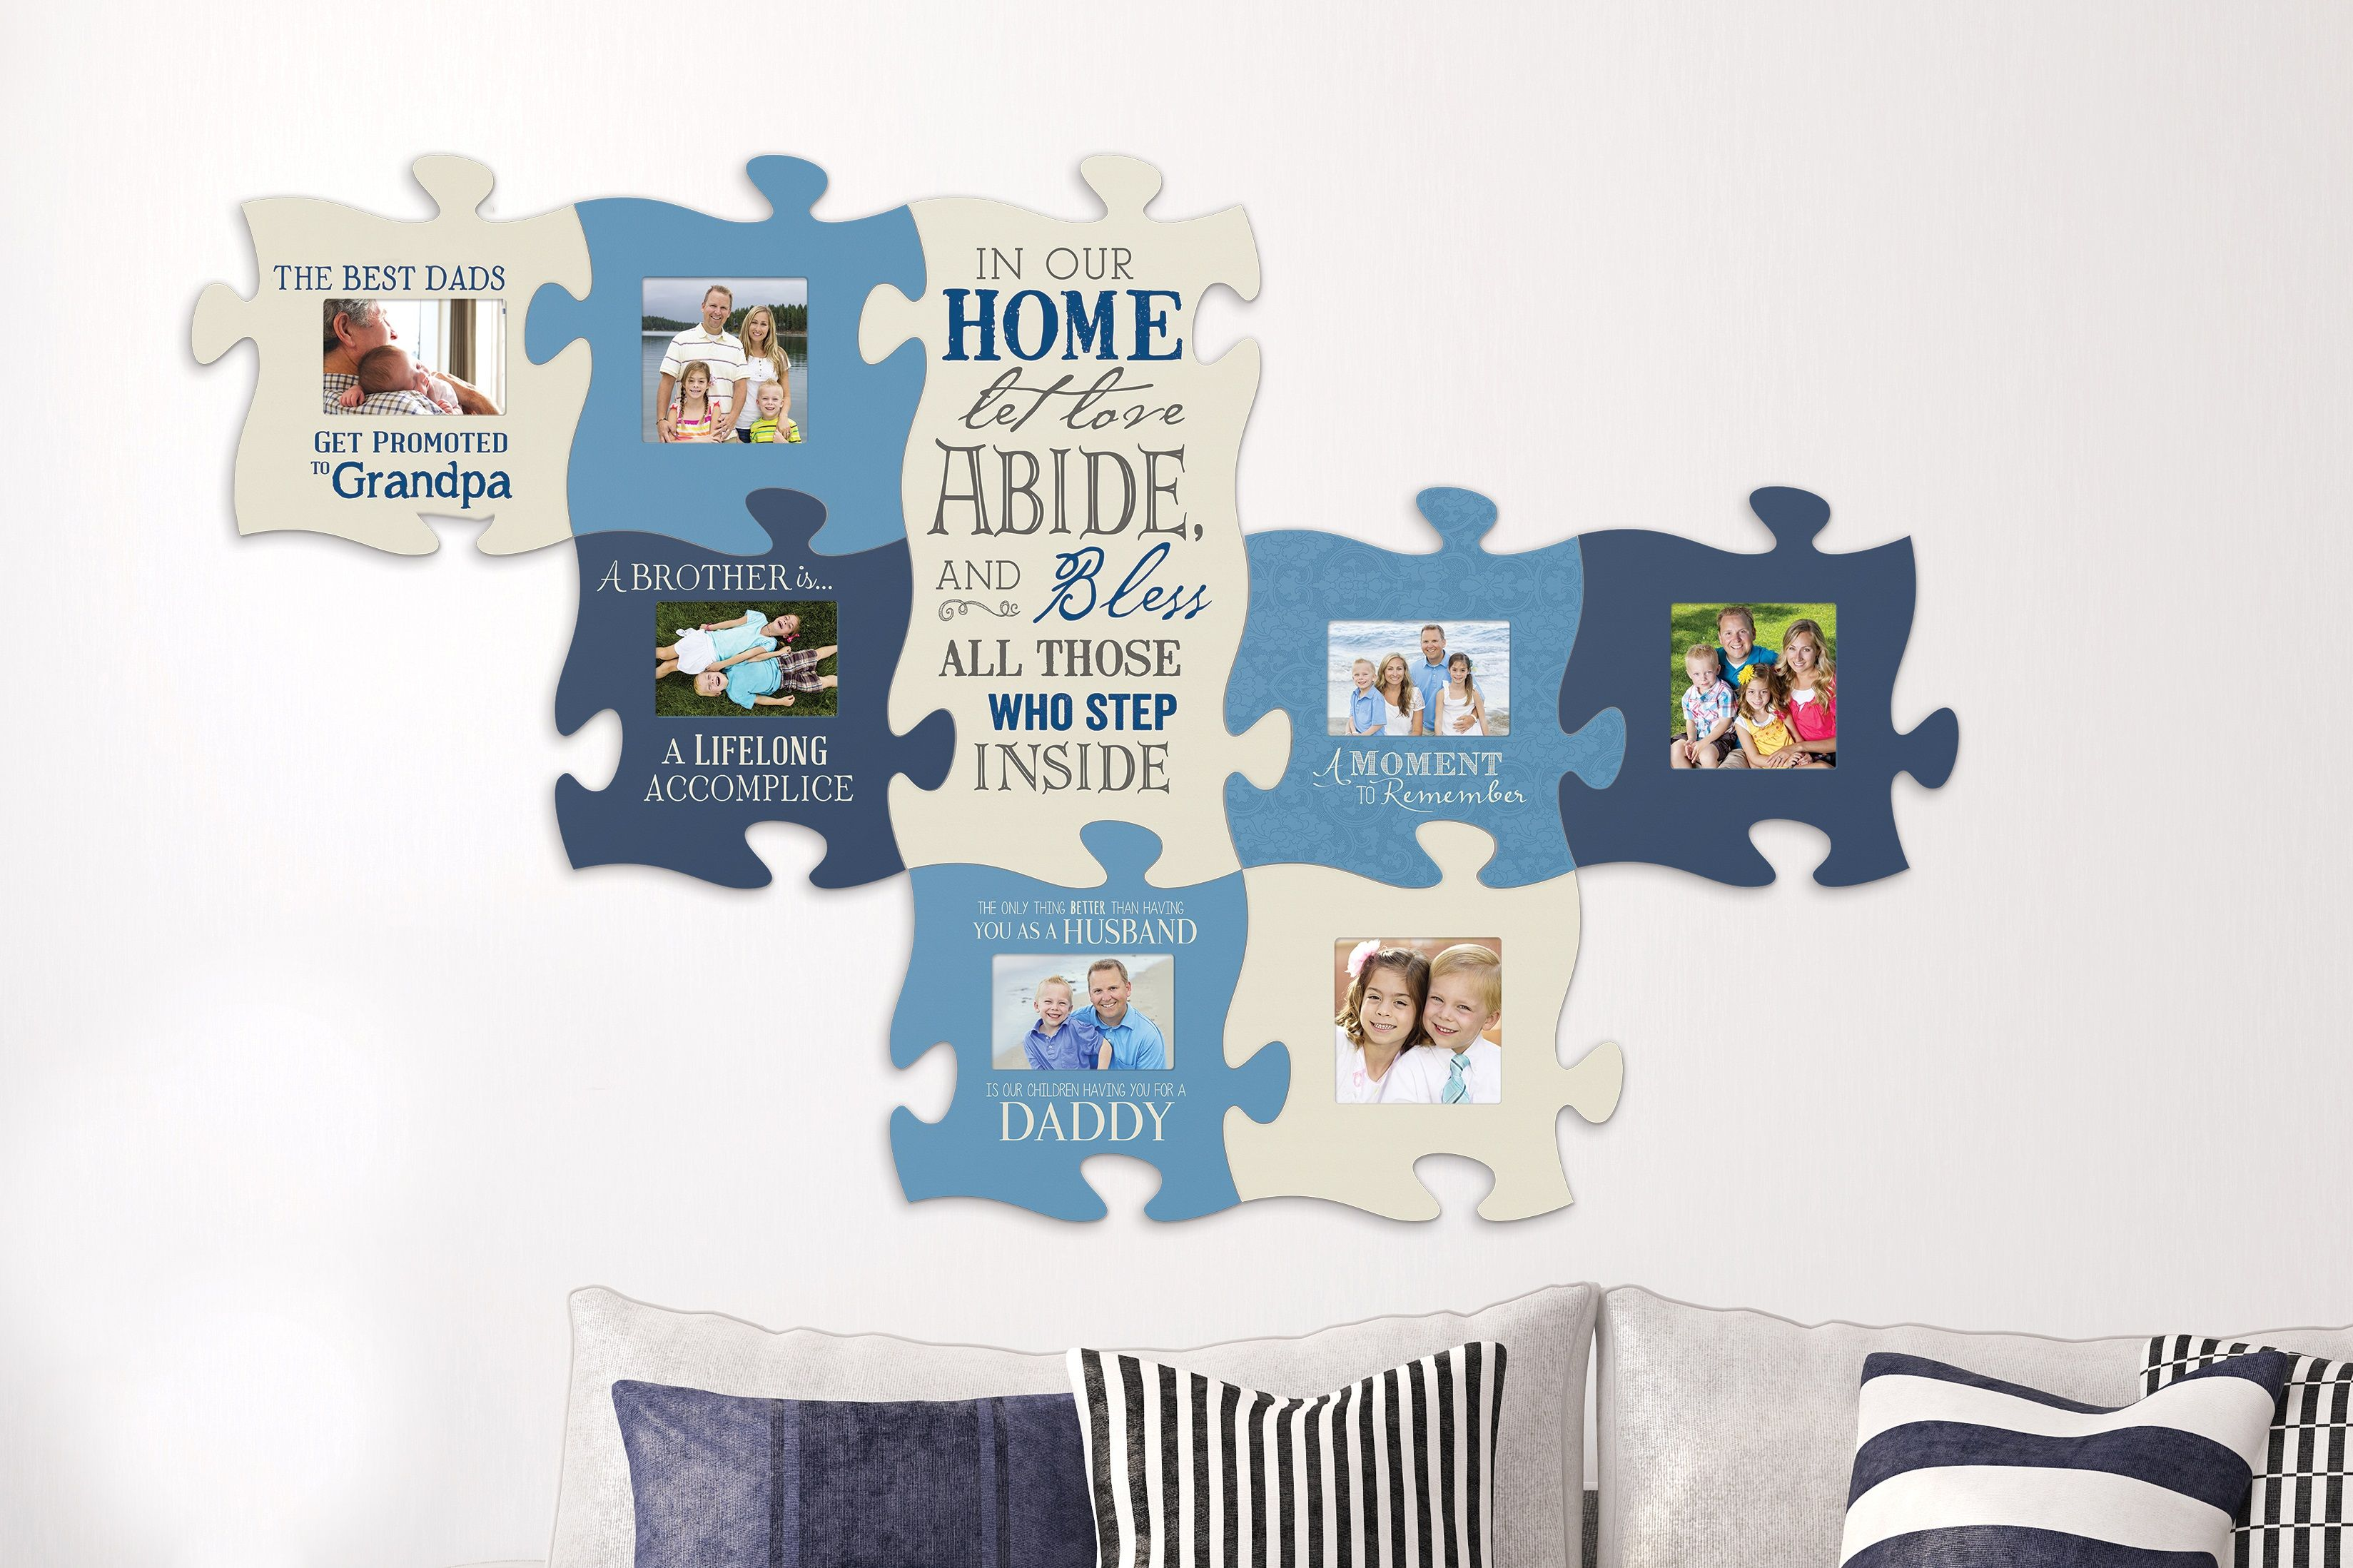 Puzzle Piece Your Family And Friends Together With This Wall Art There S Room For Everyone Plus Integrate Inspi Family Wall Decor Puzzle Pieces Family Wall